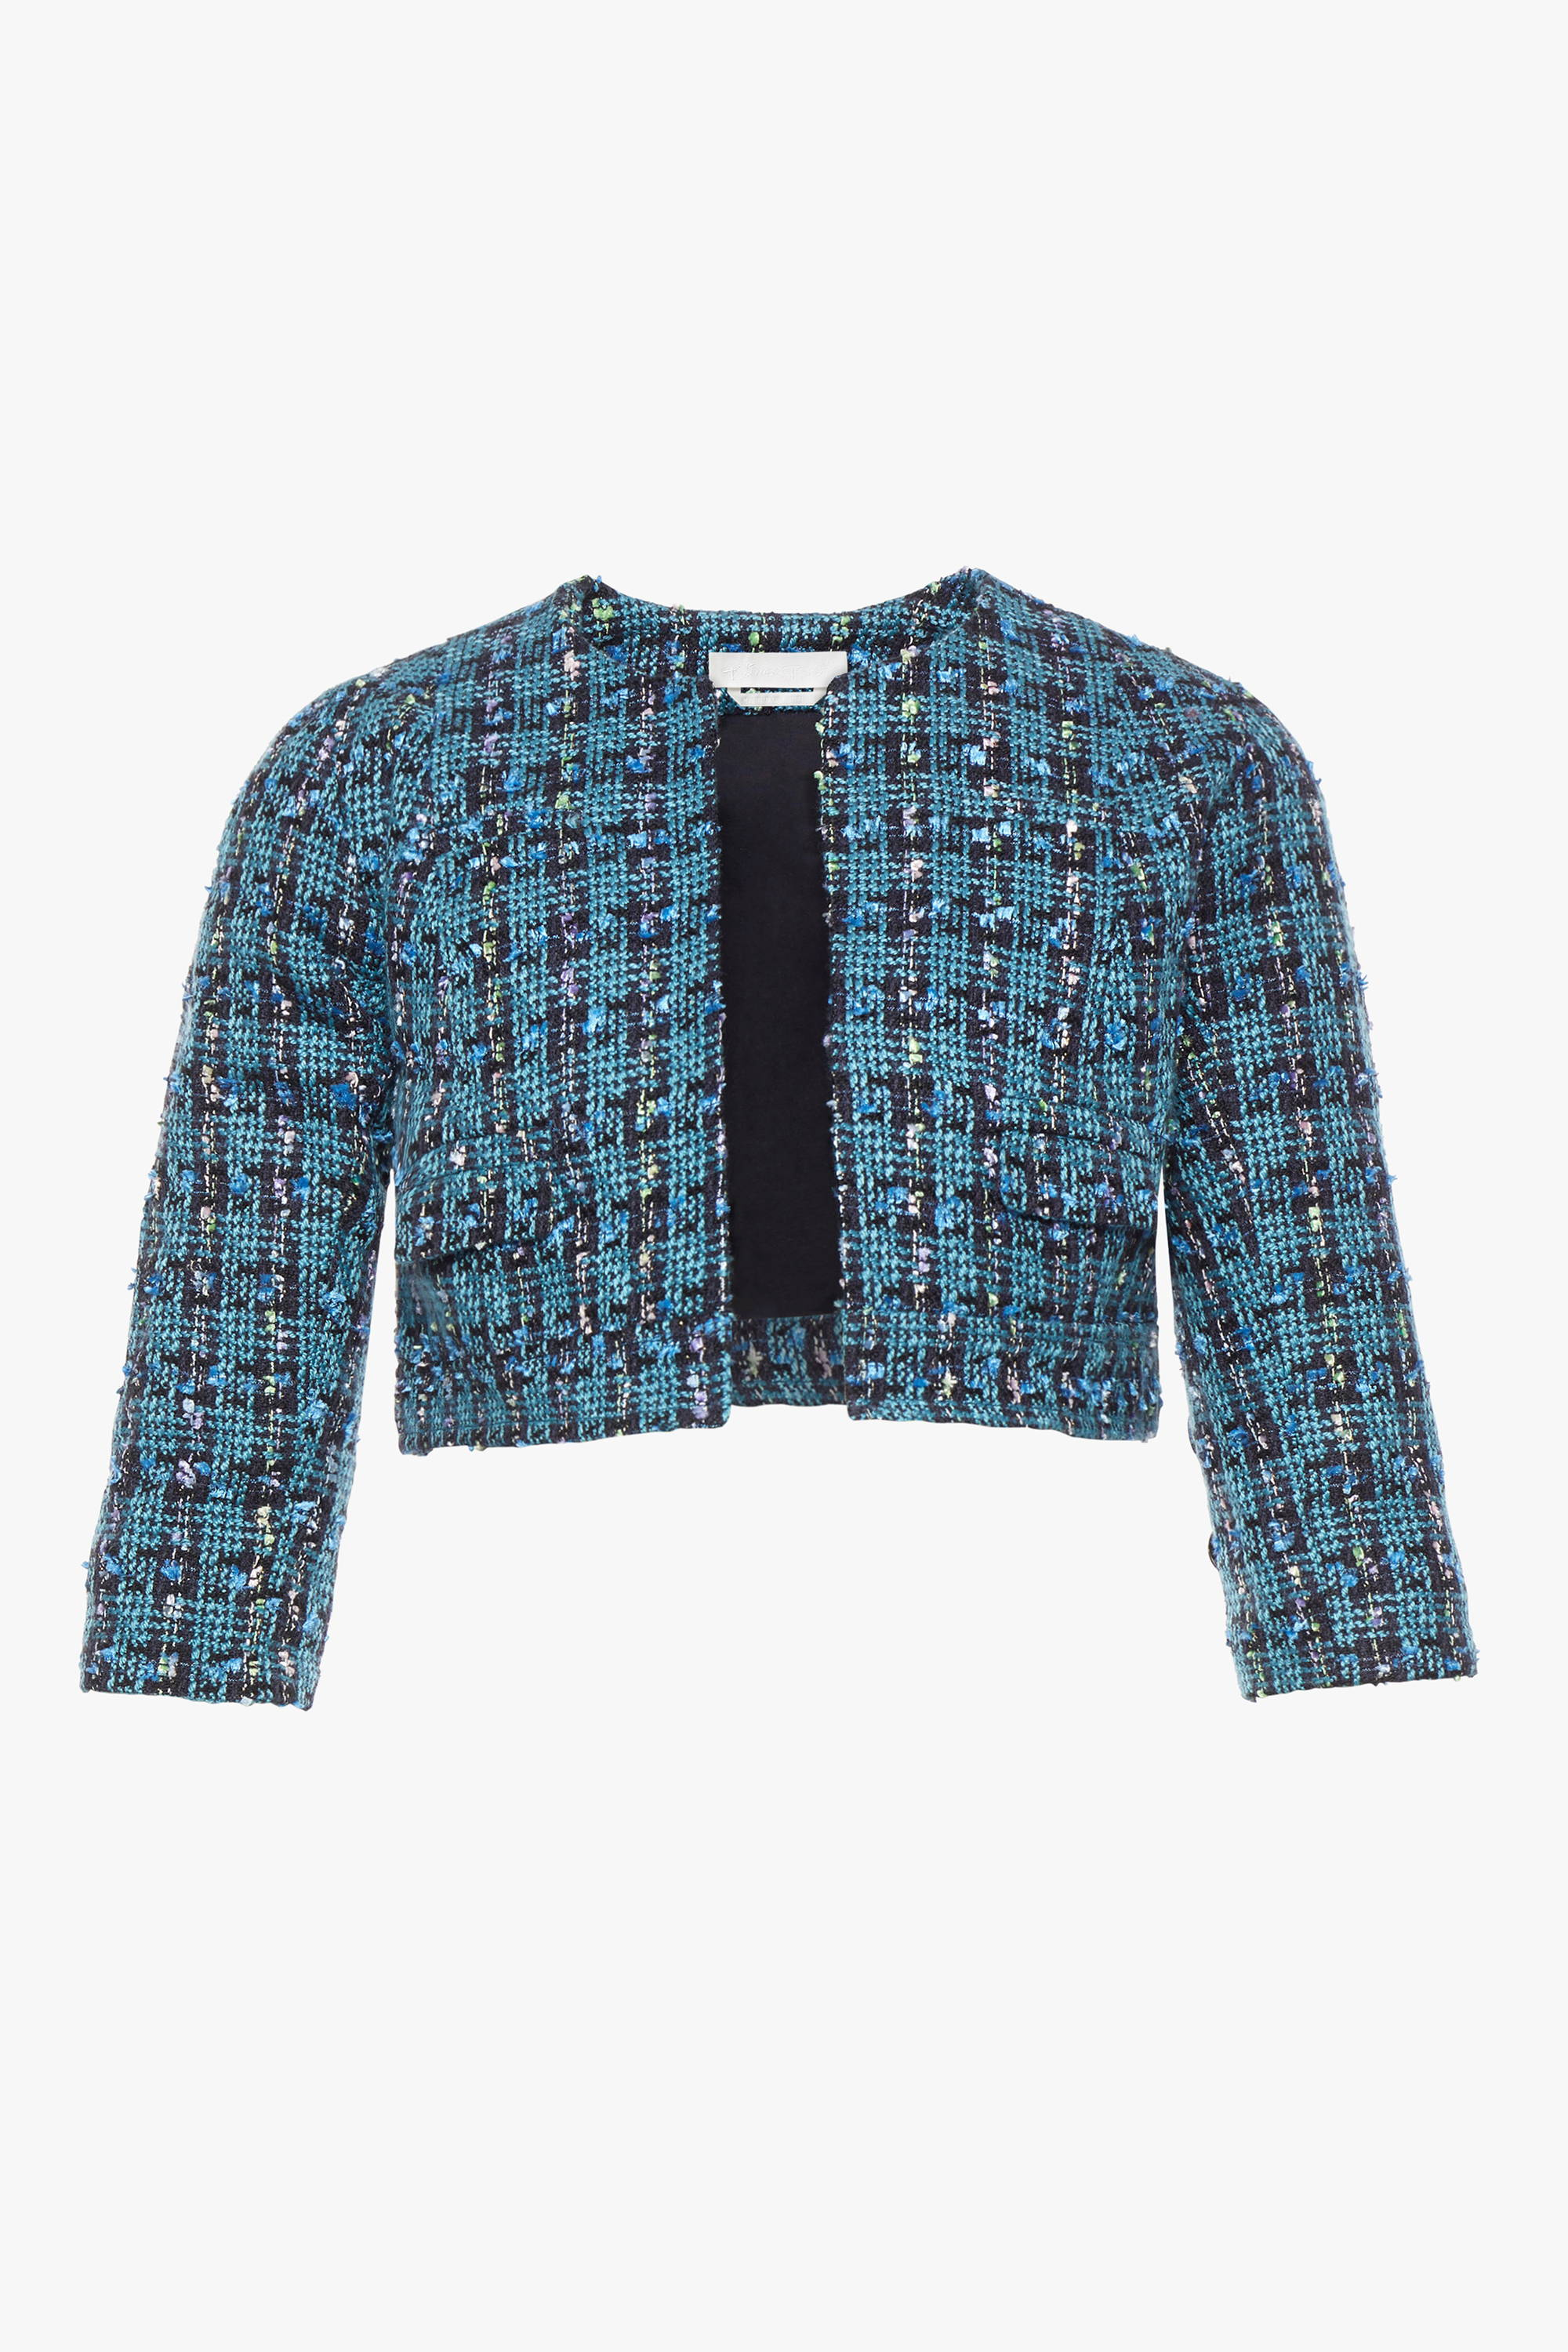 The maternity friendly Beverly jacket in blue purple boucle